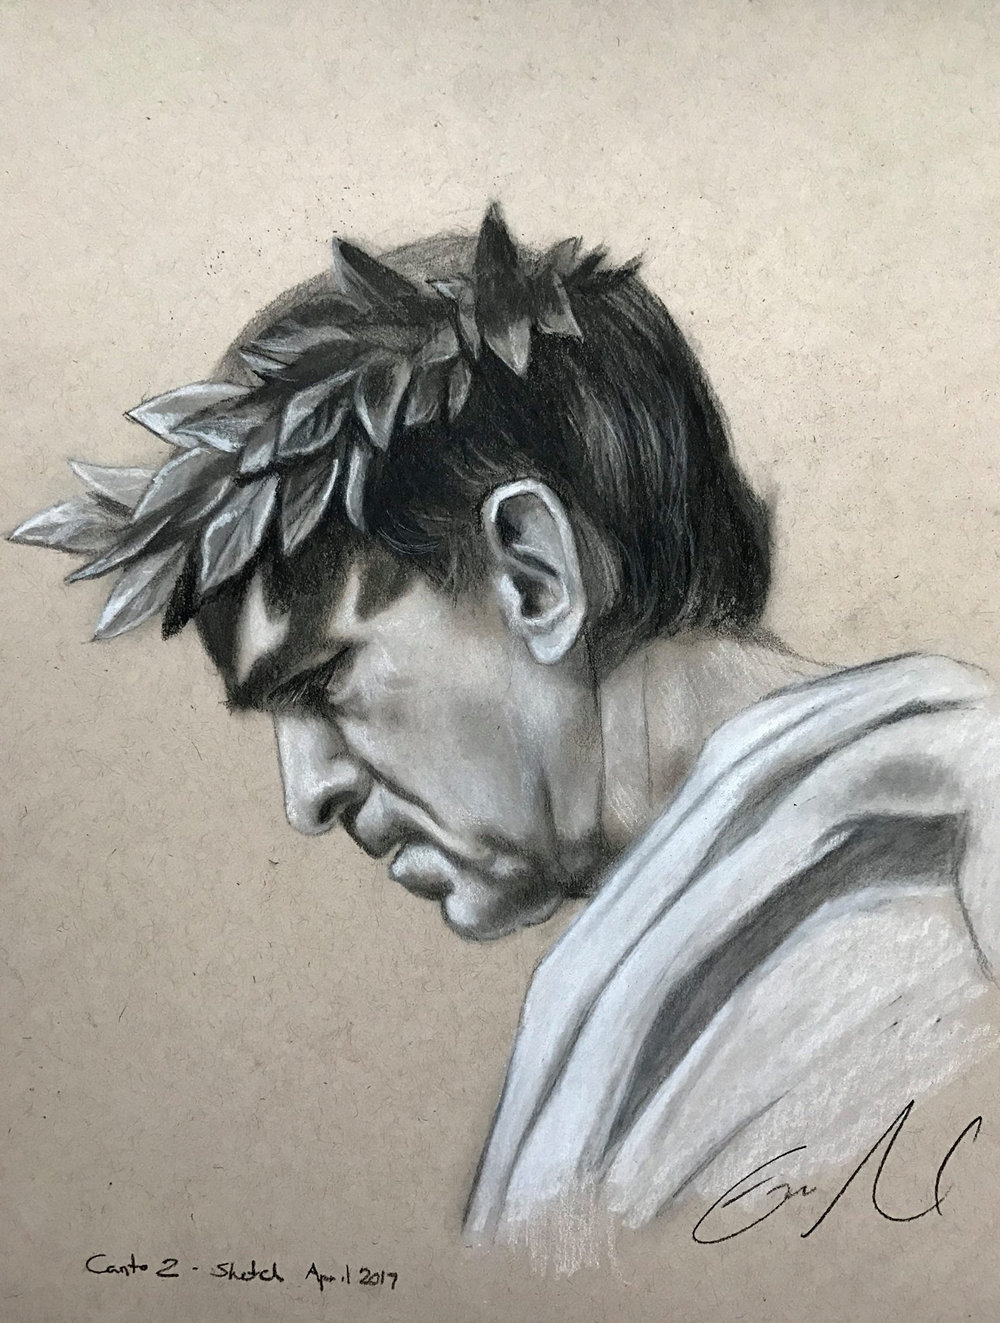 "Virgil - charcoal on toned paper, 9 x 12"" 2017"